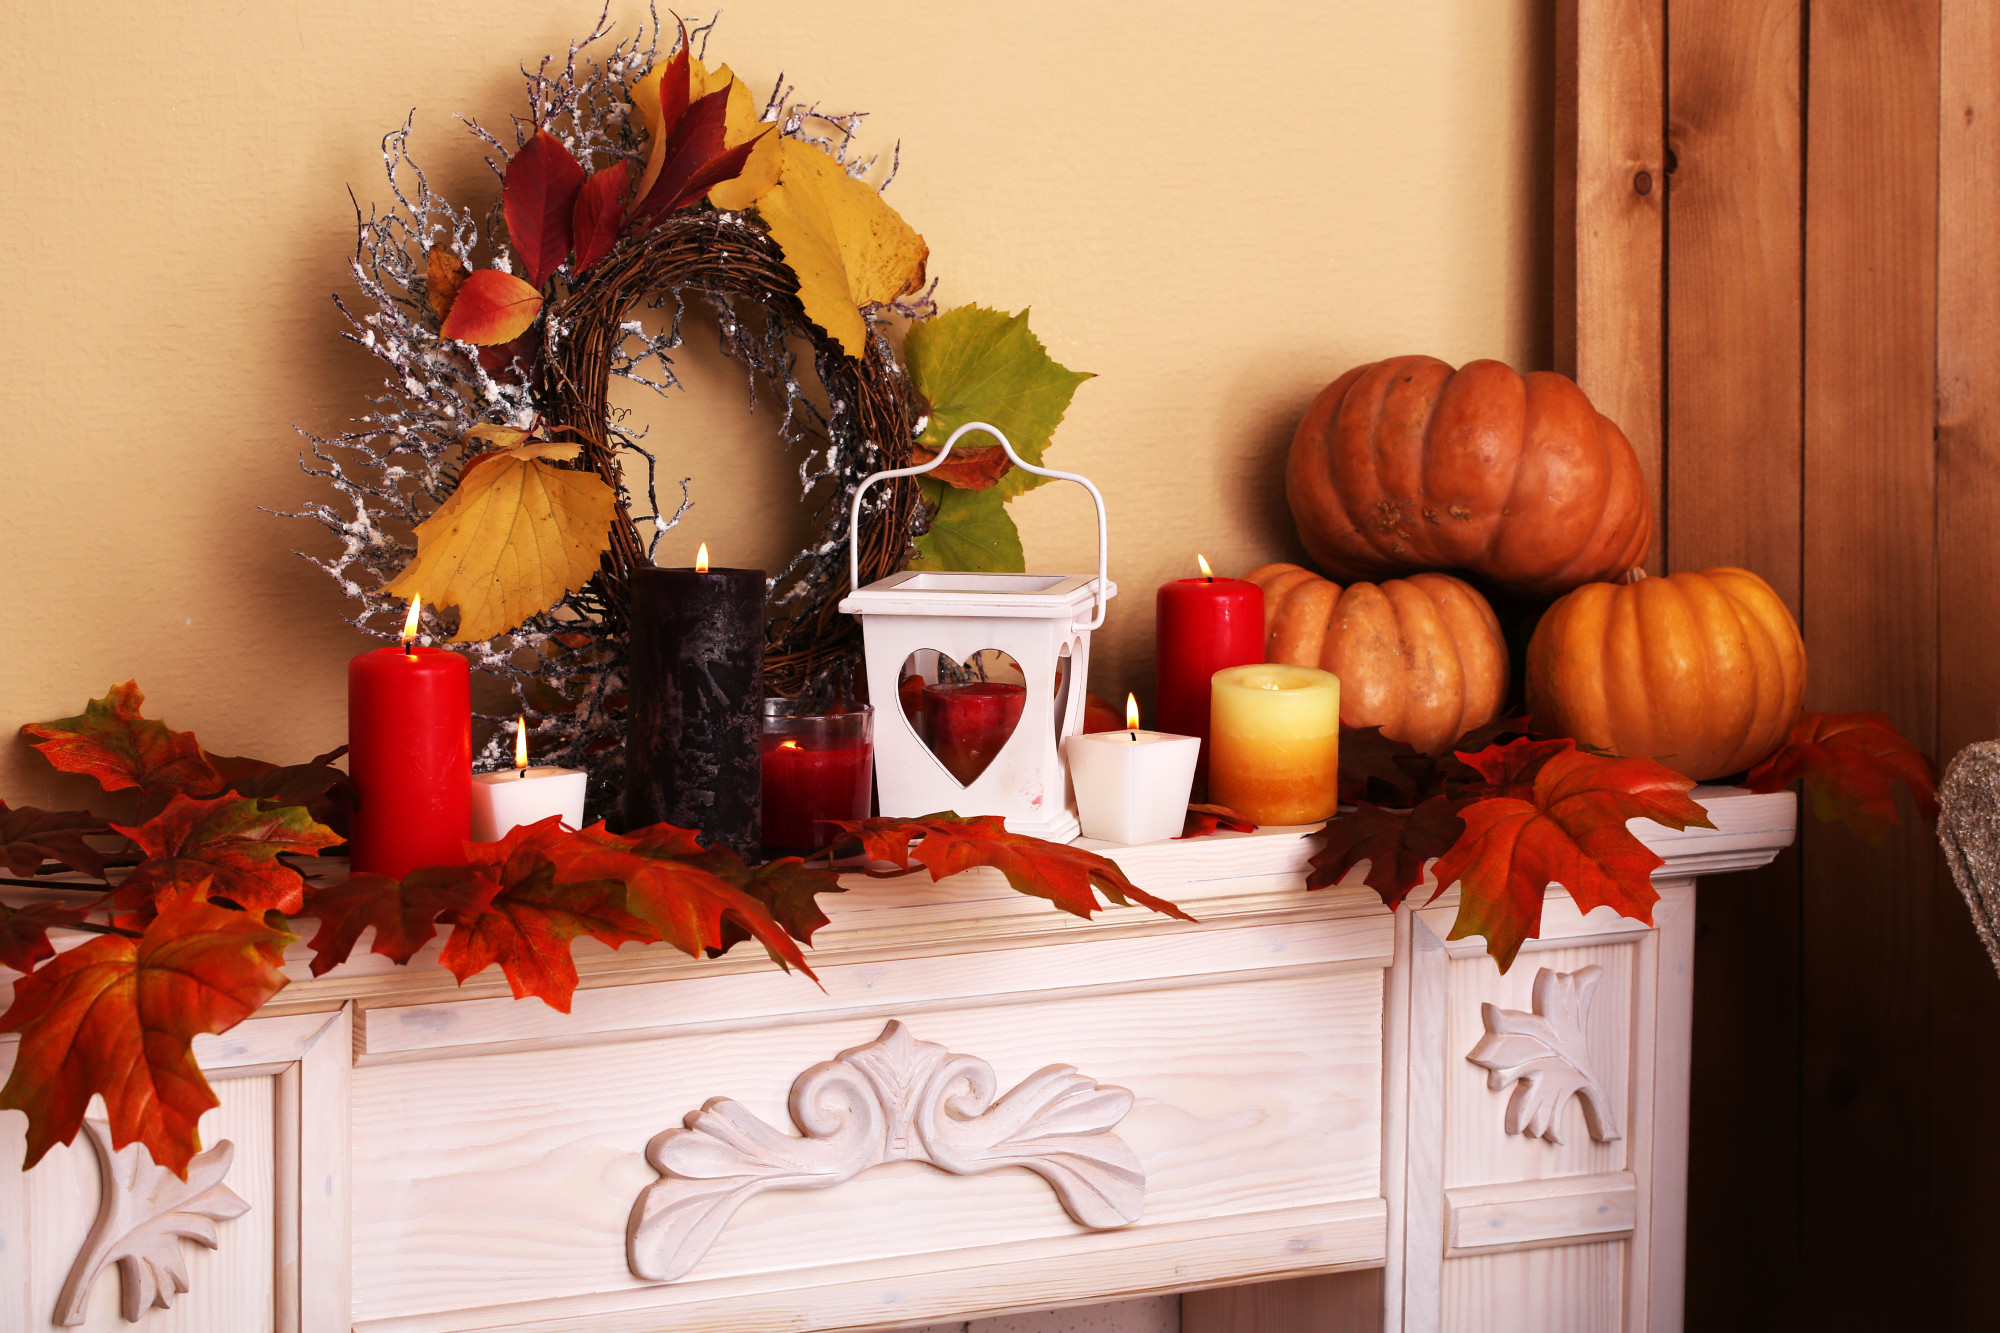 Fall Decorations: 9 Ideas to Make Your Home Feel Cozy